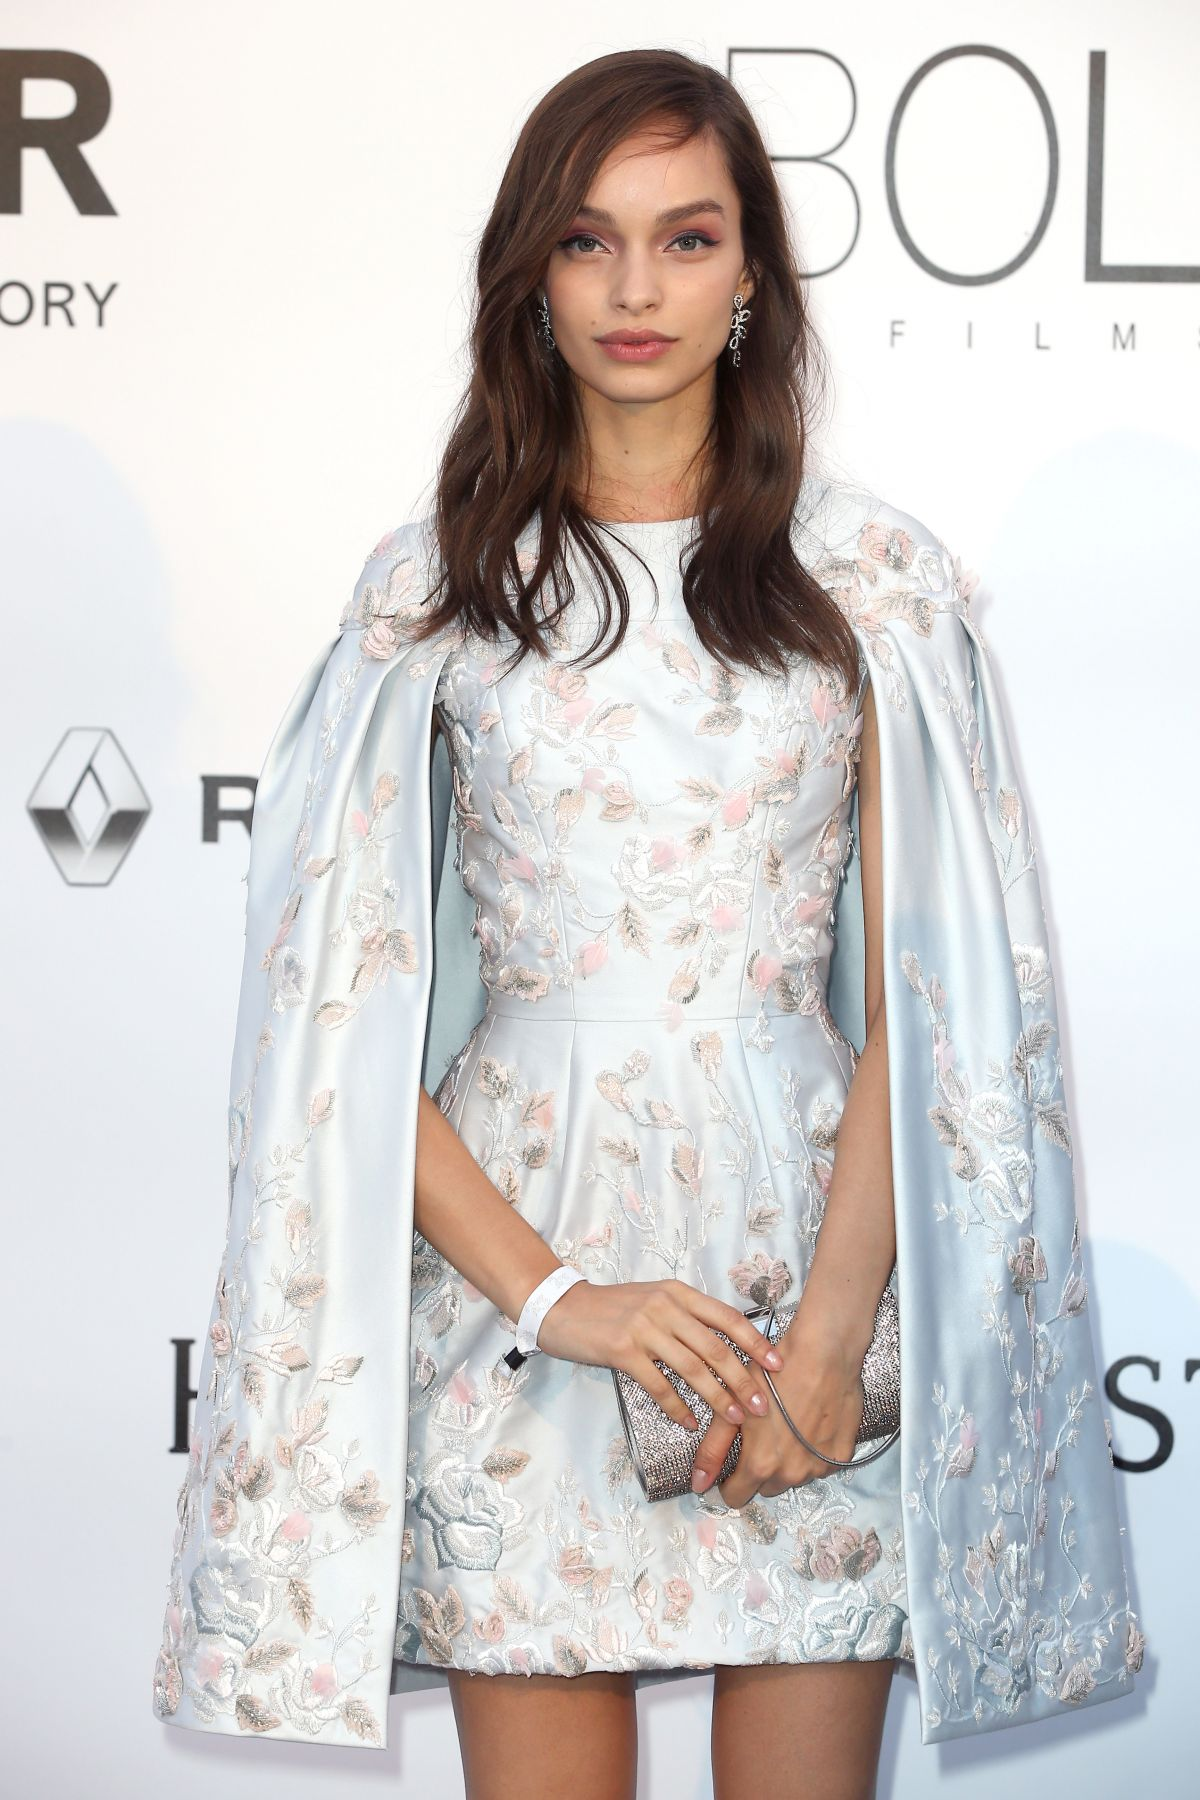 LUMA GROTHE at Amfar's 23rd Cinema Against Aids Gala in Antibes 05/19/2016